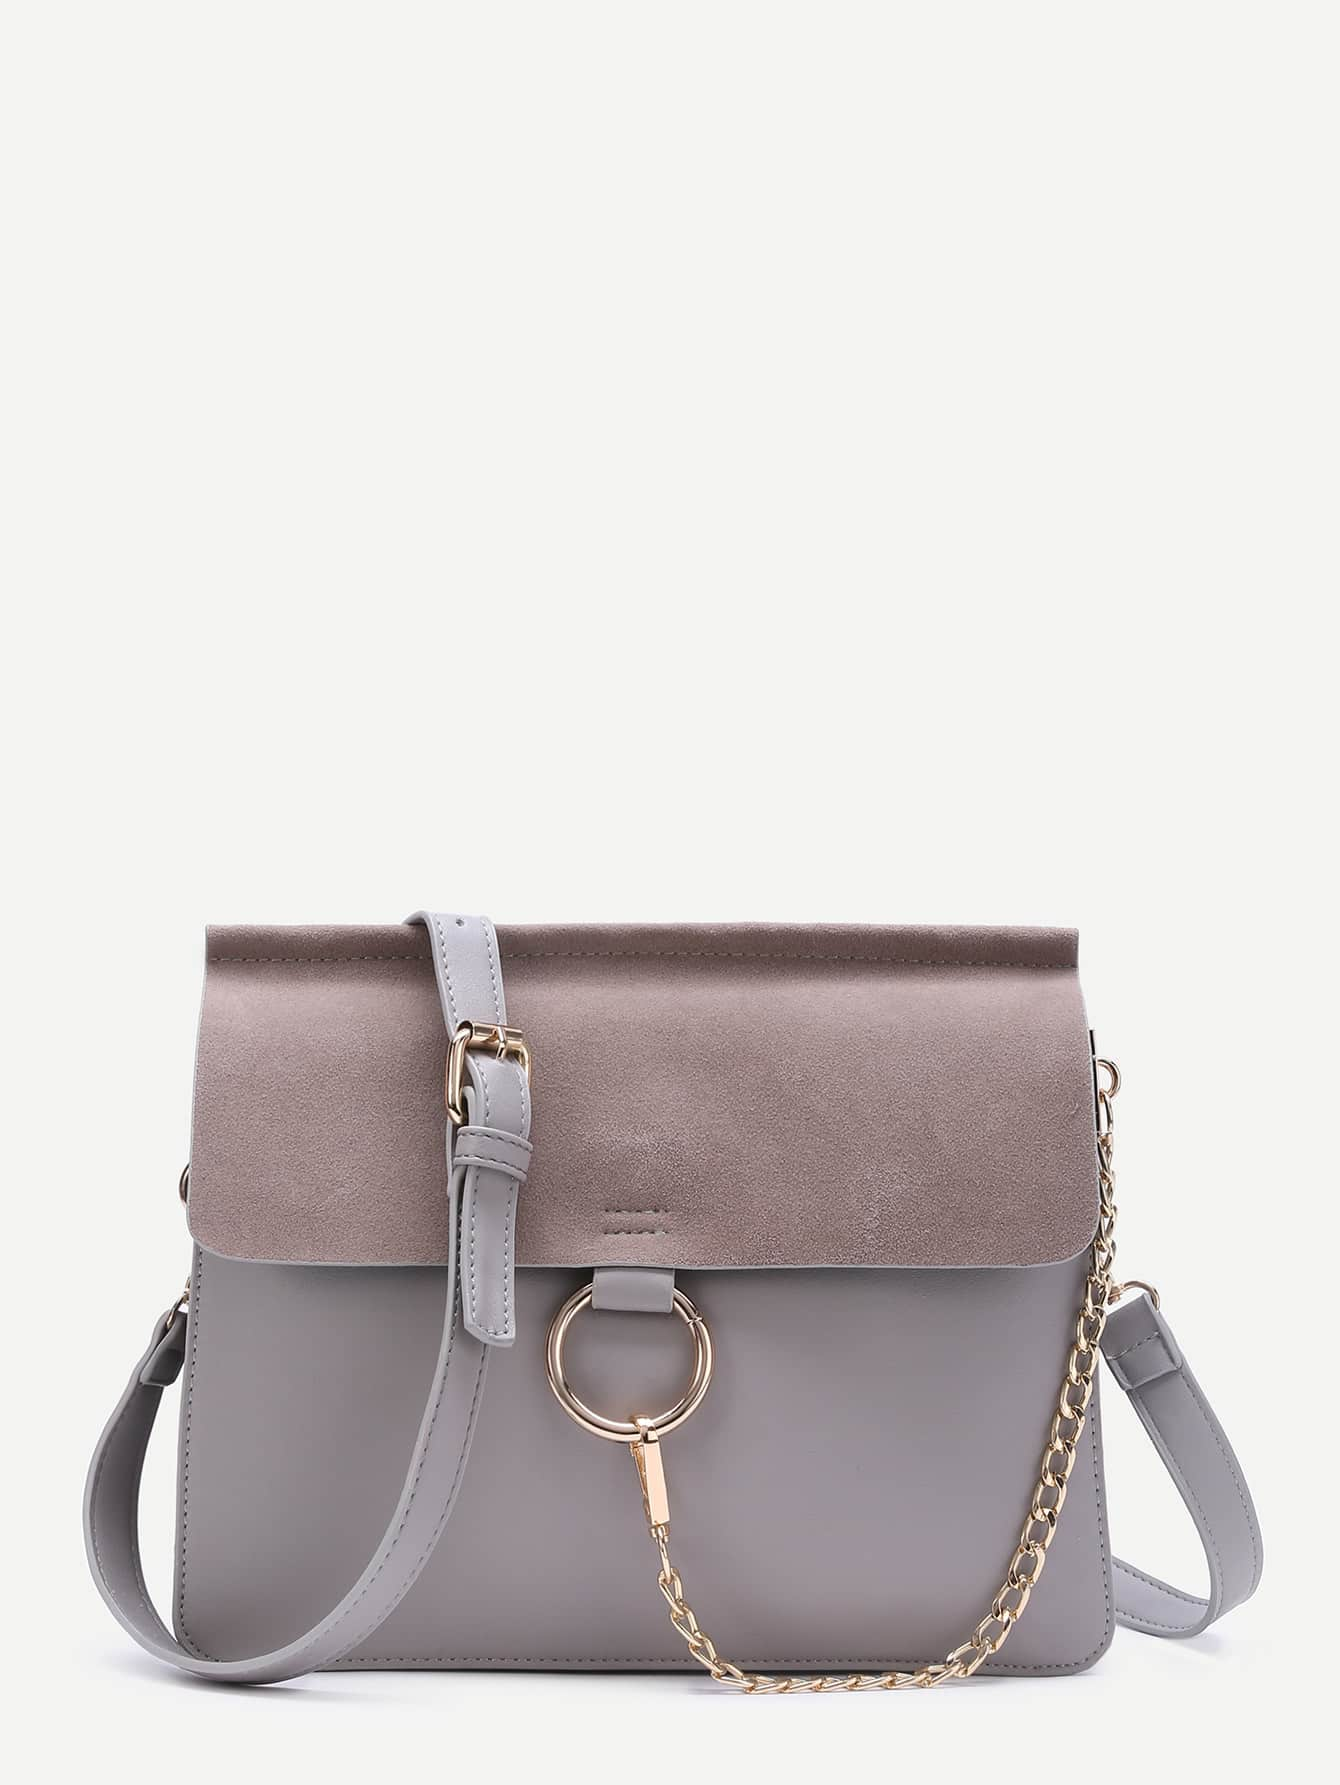 grey bag with gold details